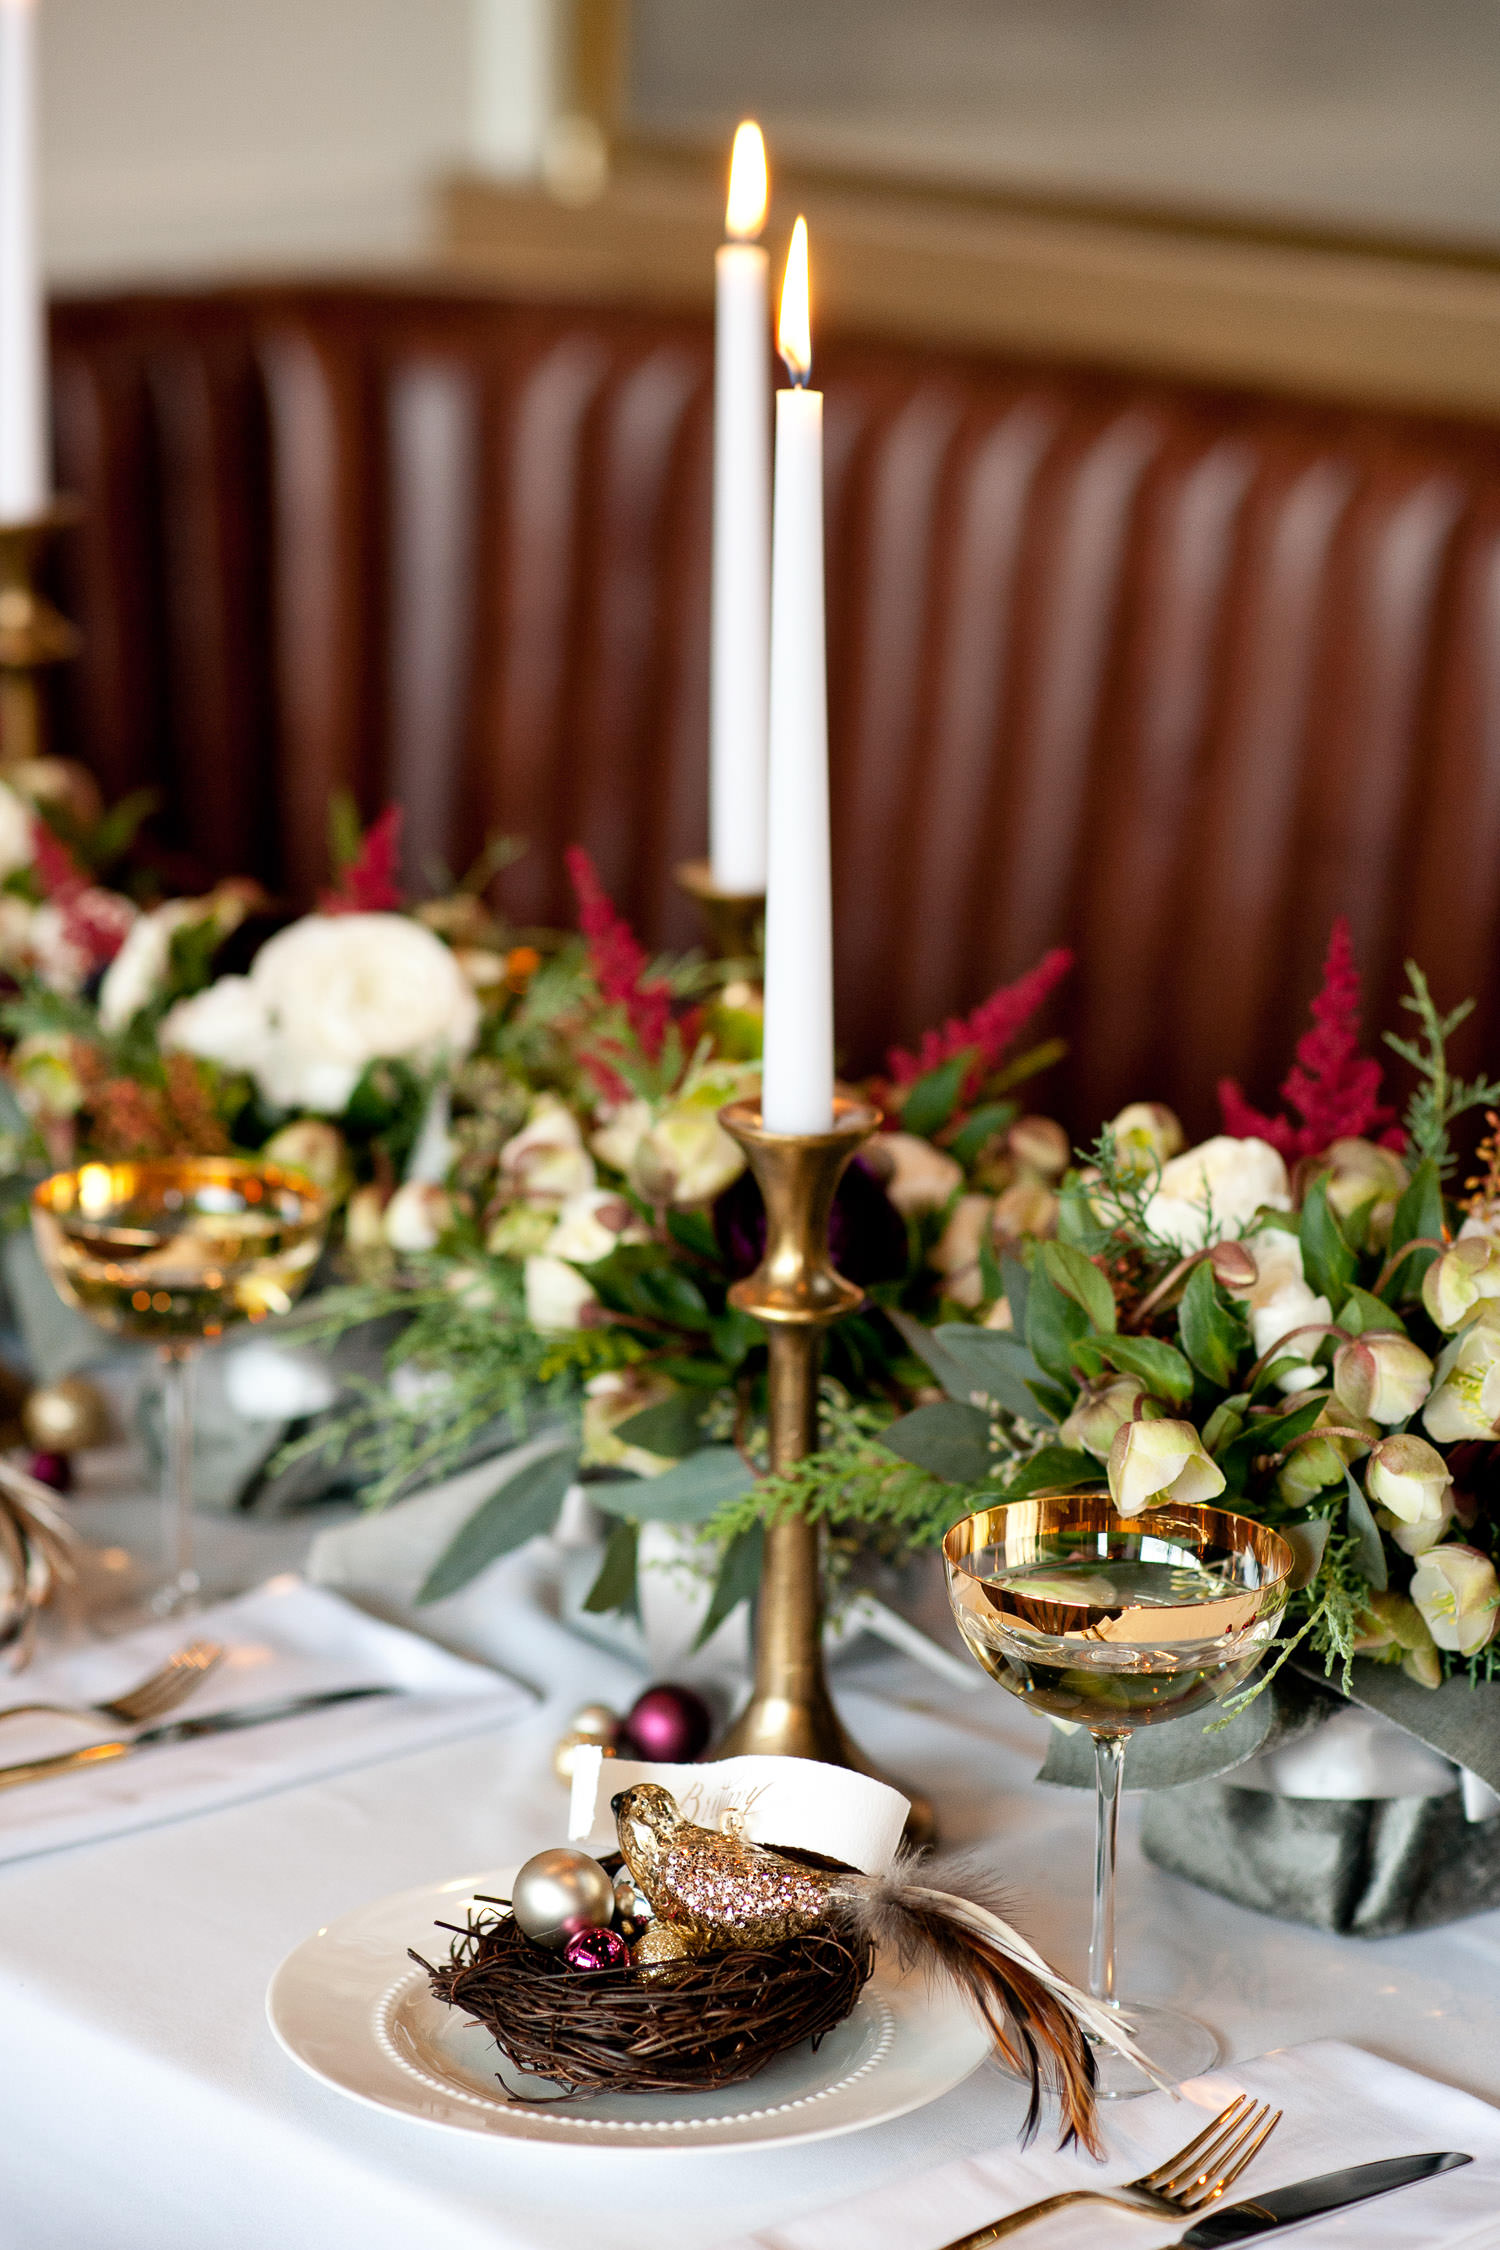 bird's nest on a holiday tabletop captured by Tara Whittaker Photography